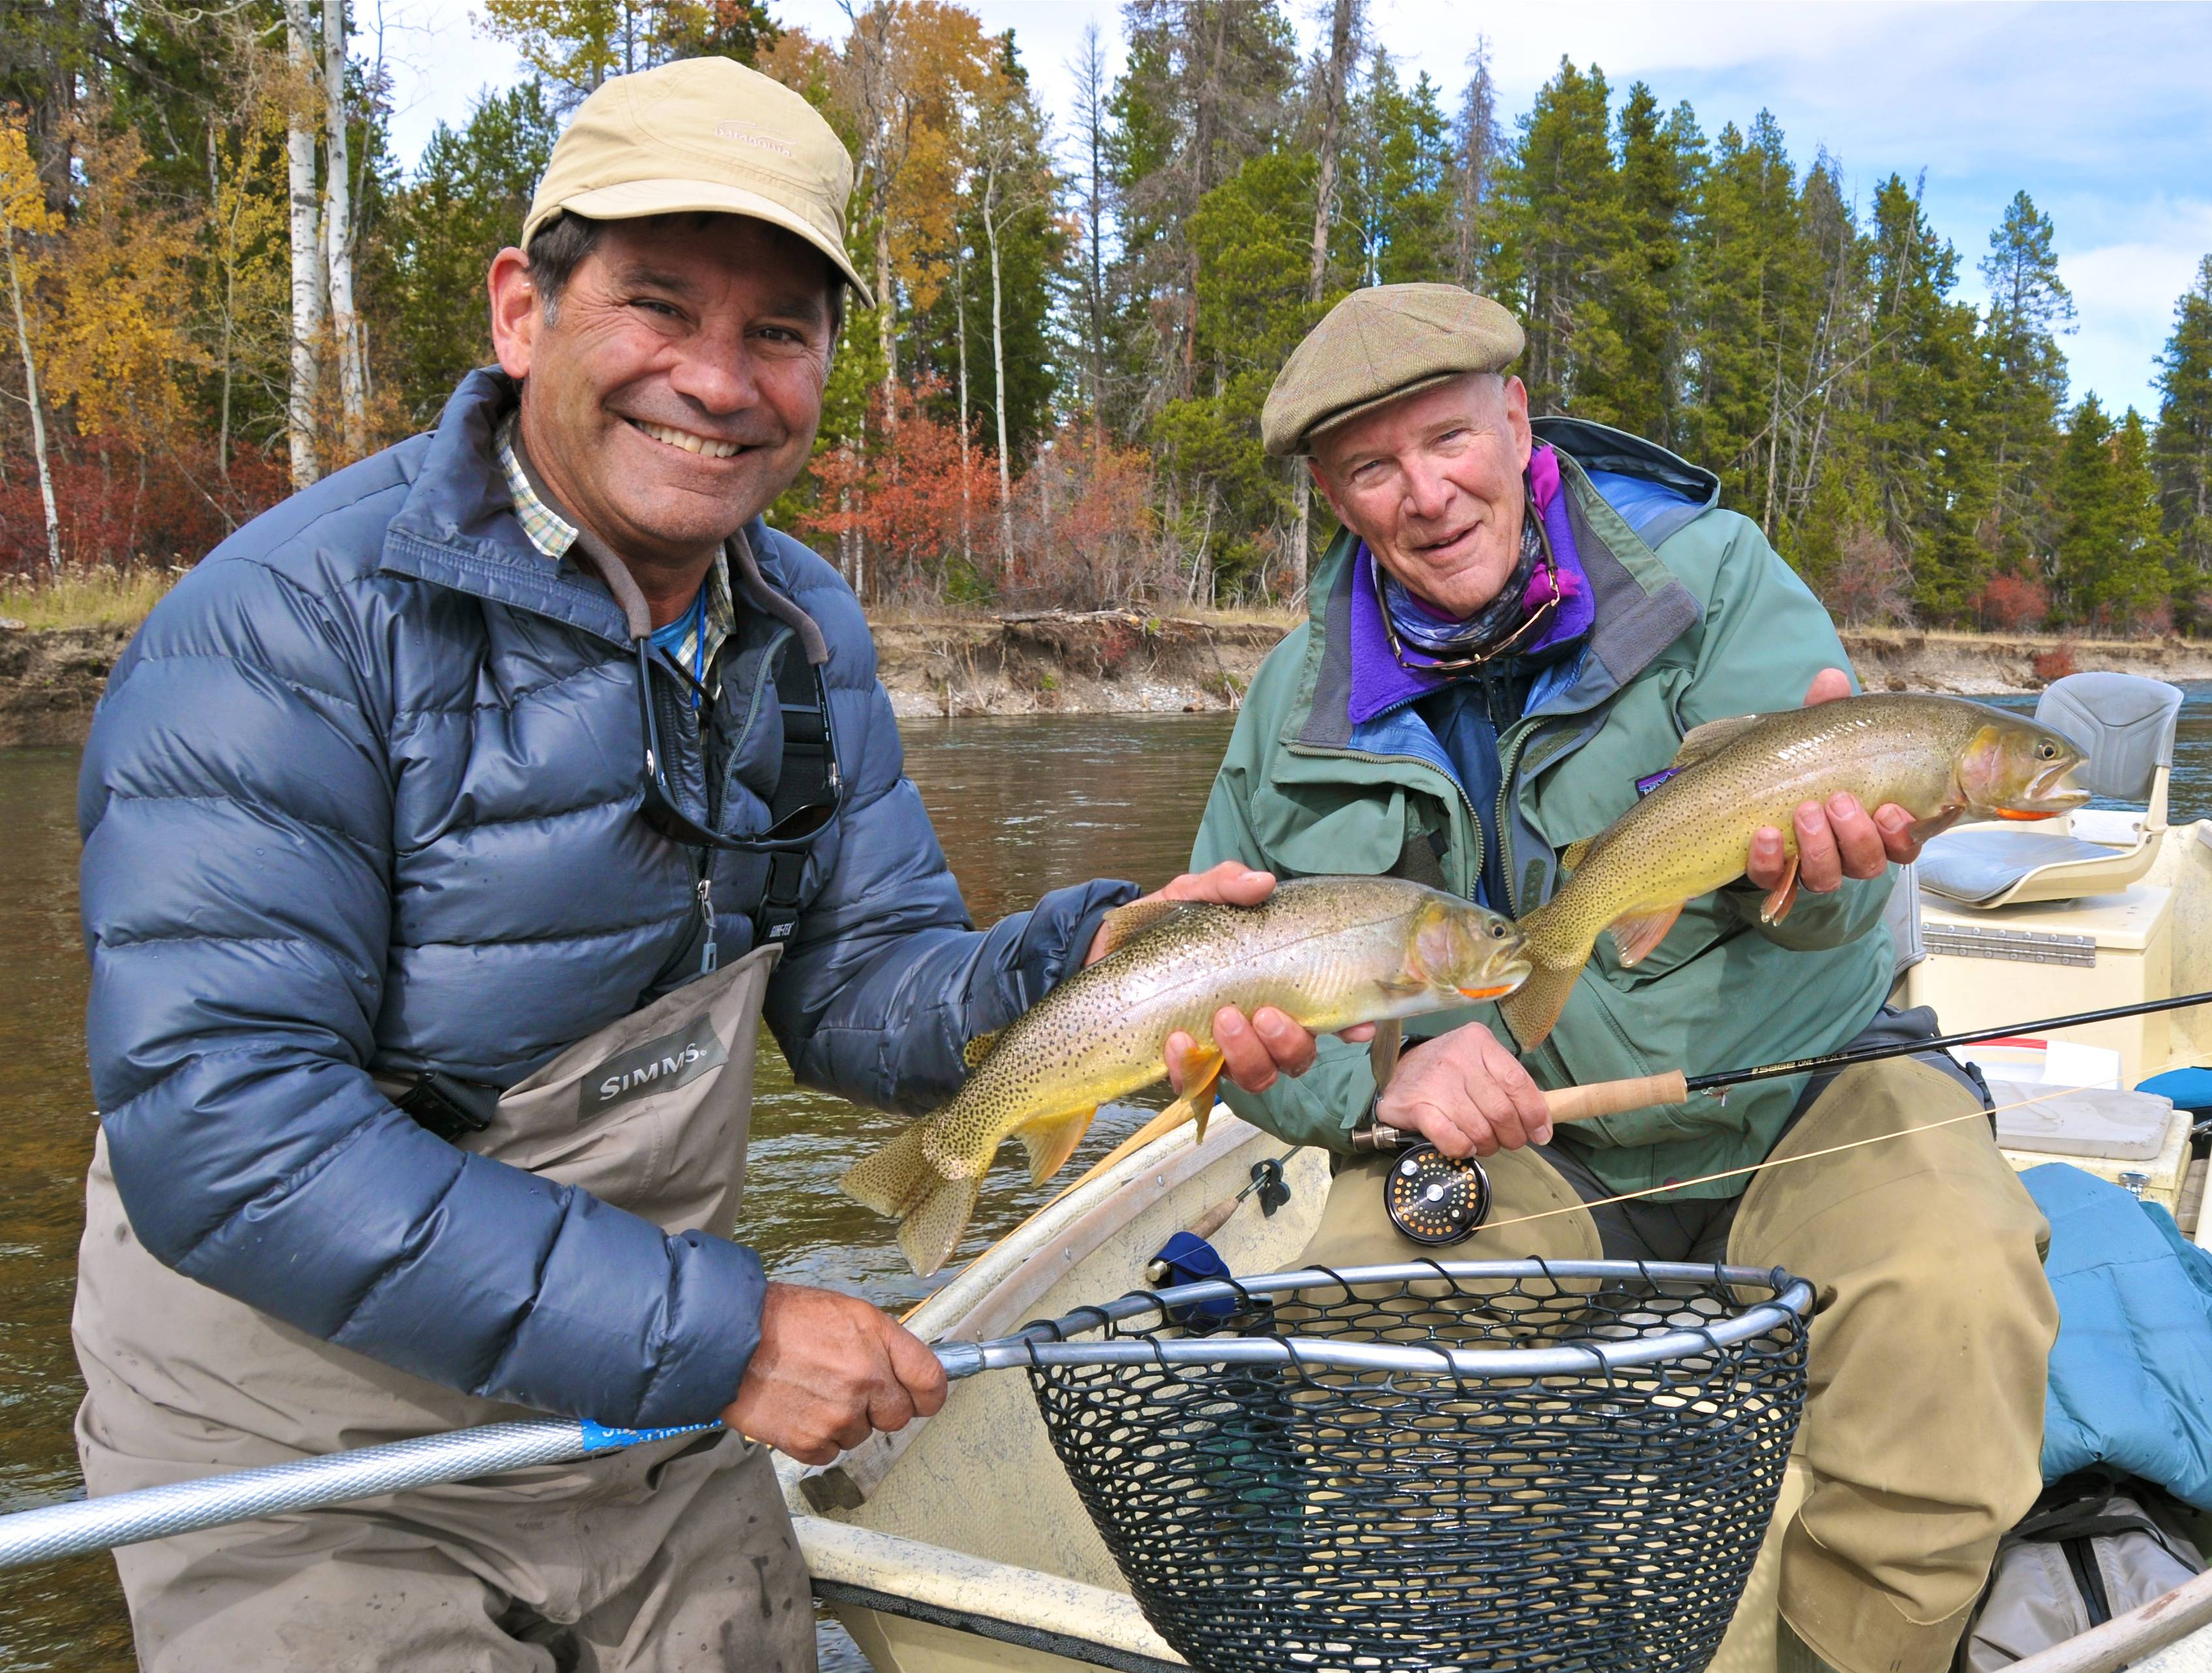 Snake River fly fishing guides and clients with trout in hand